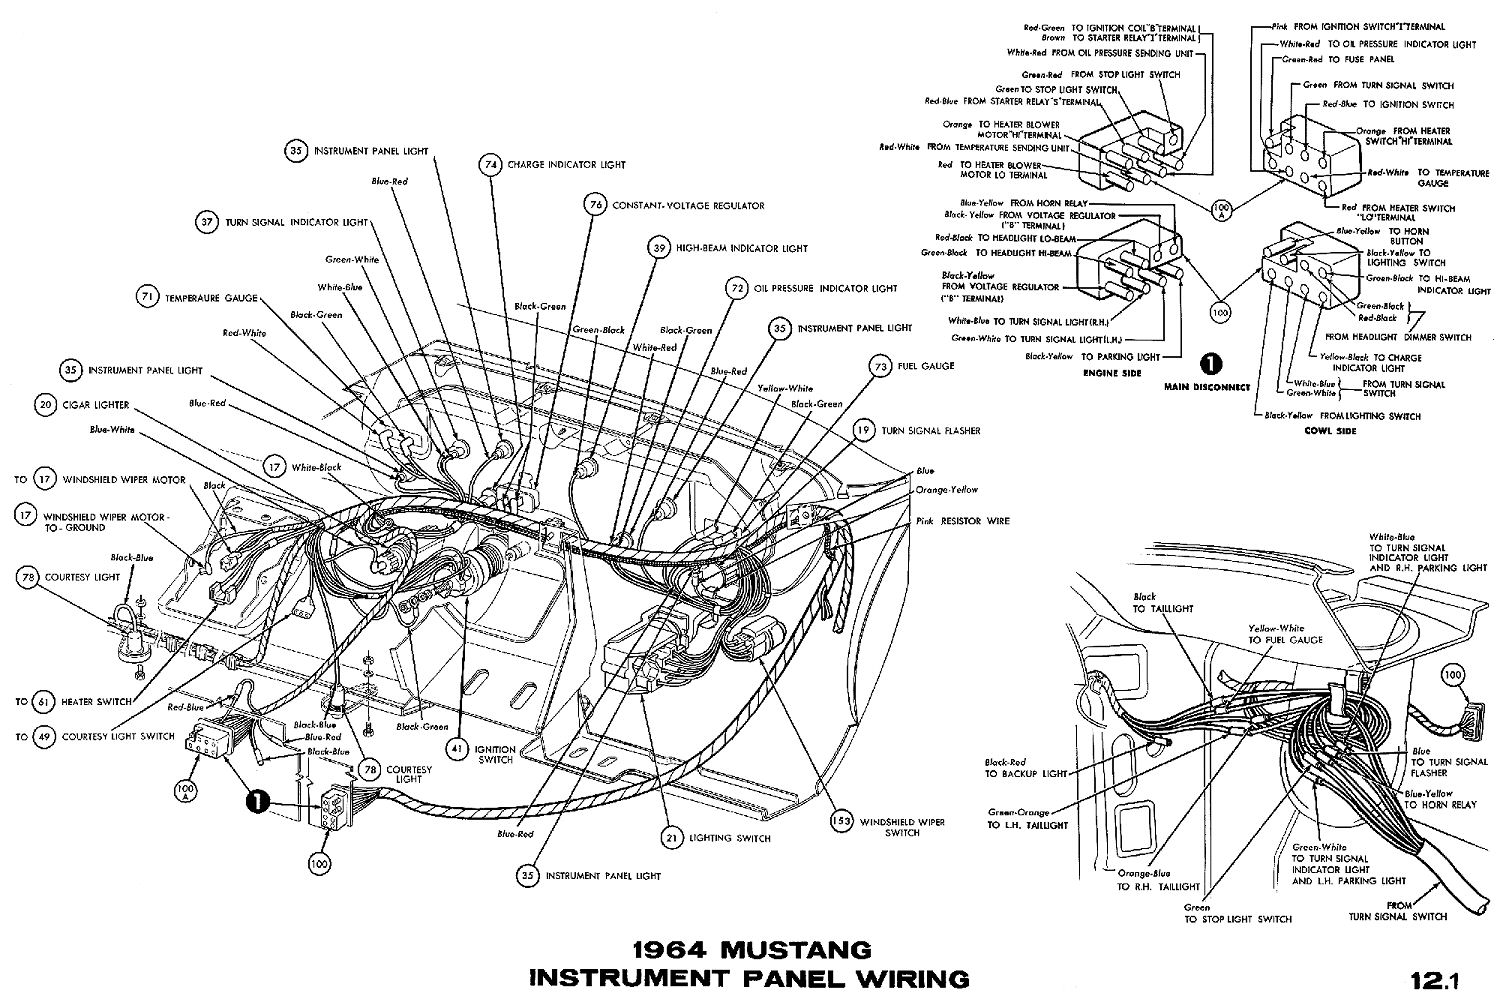 1964b 1964 mustang wiring diagrams average joe restoration 1972 mustang wiring schematic at bakdesigns.co